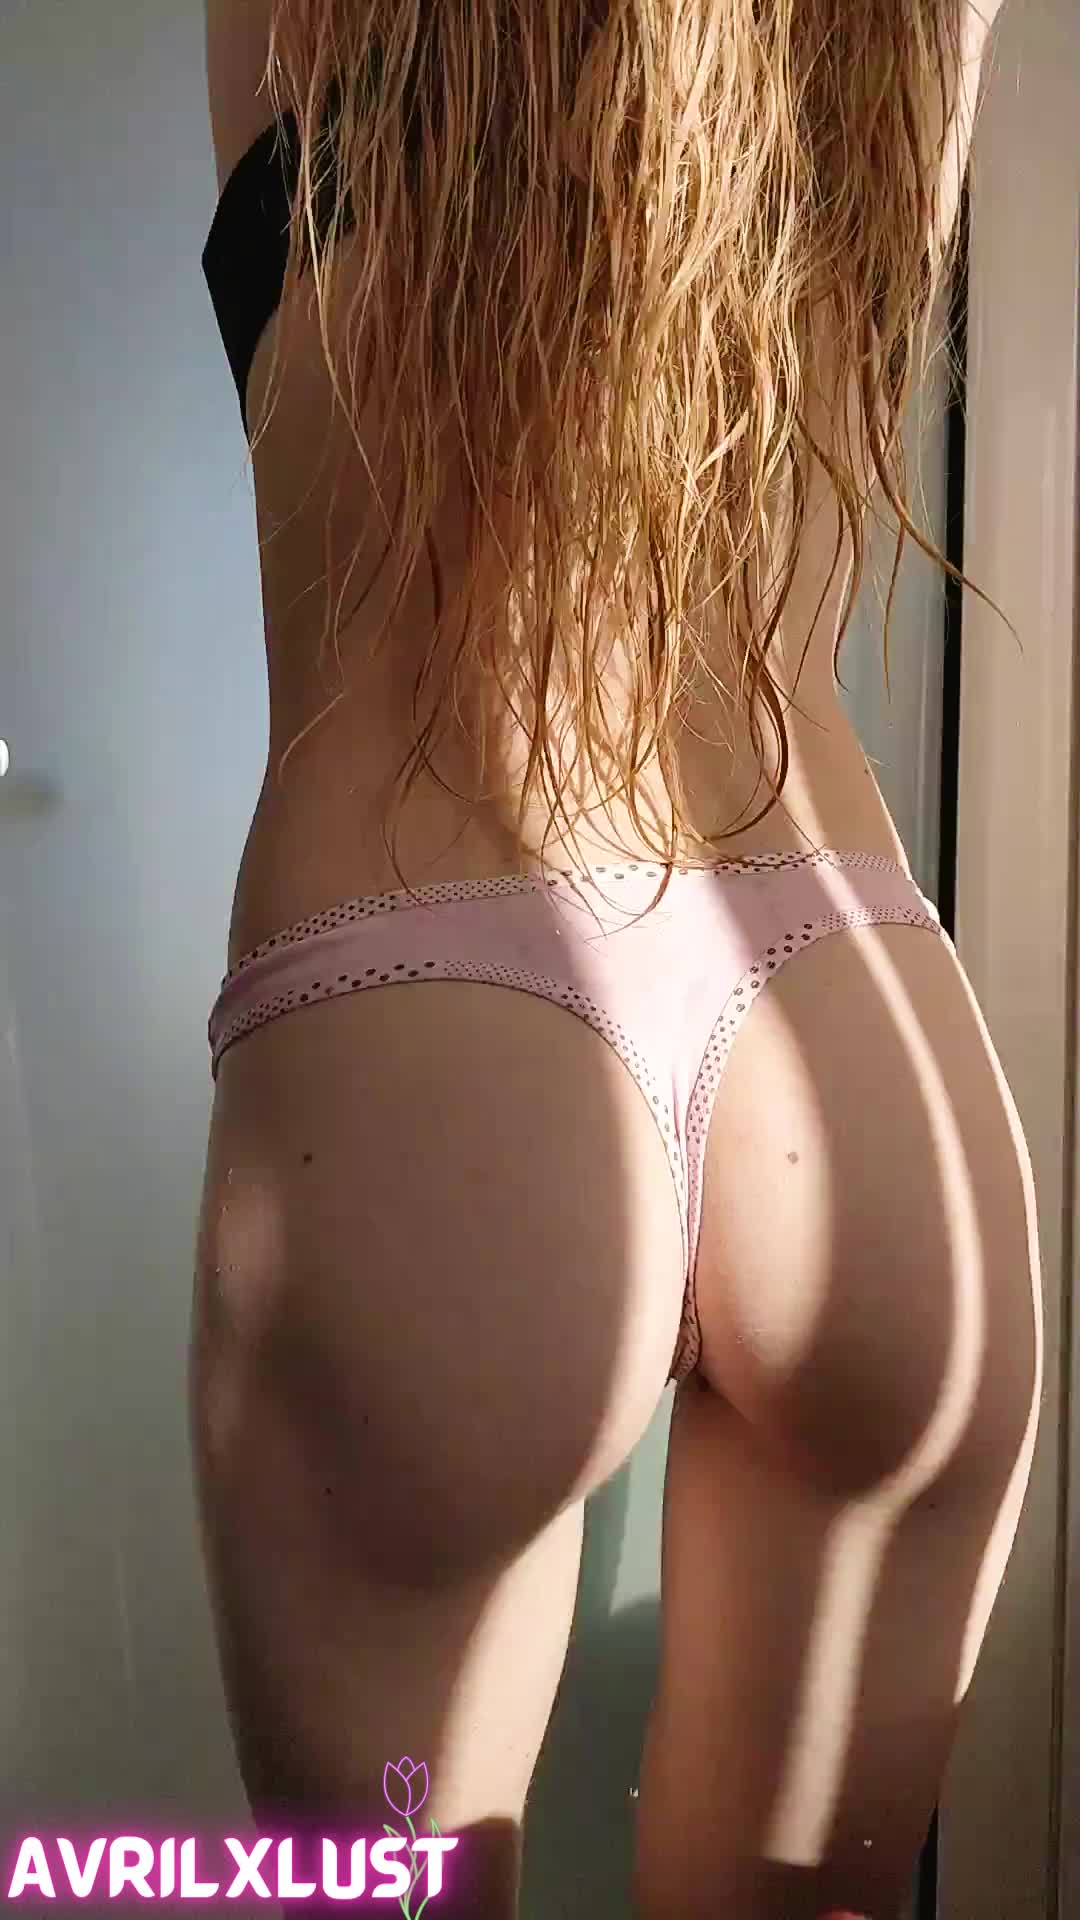 Found A Little Video From A Long Time Ago - There's Something About My Lil Ass That Makes me Love it So Much!